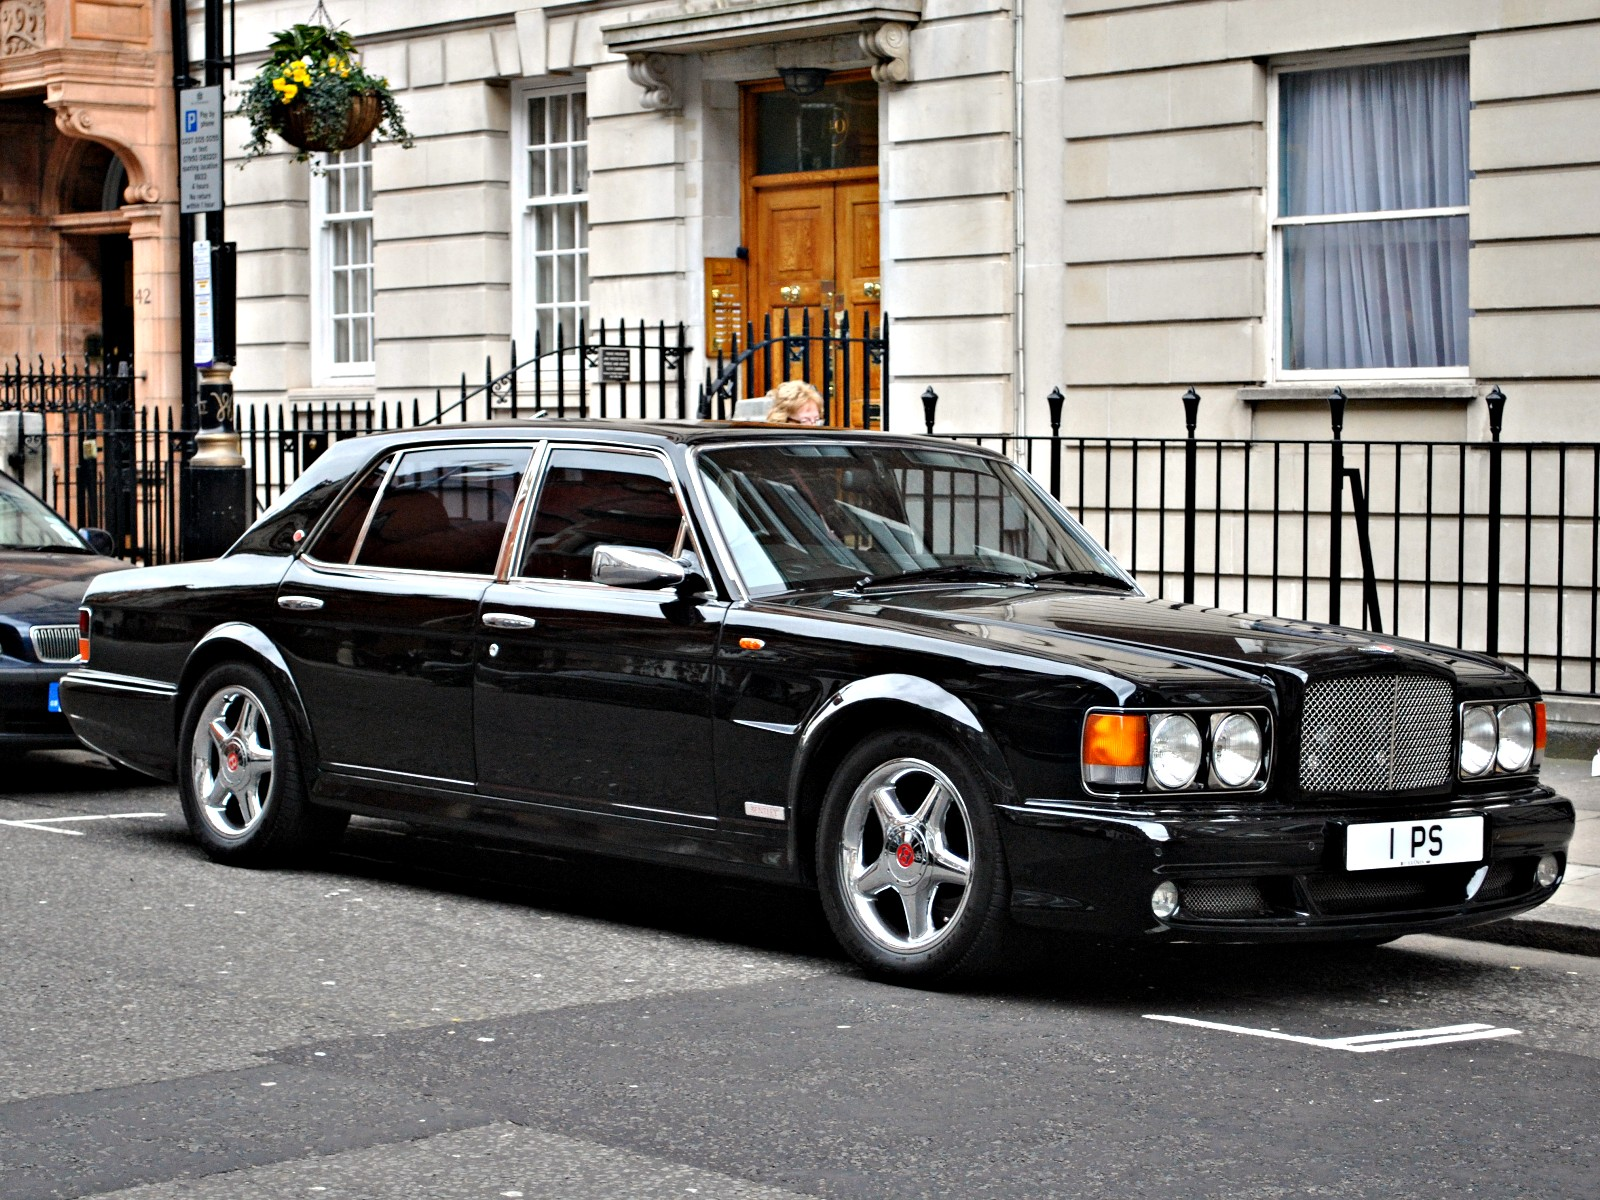 bentley turbo r images #4